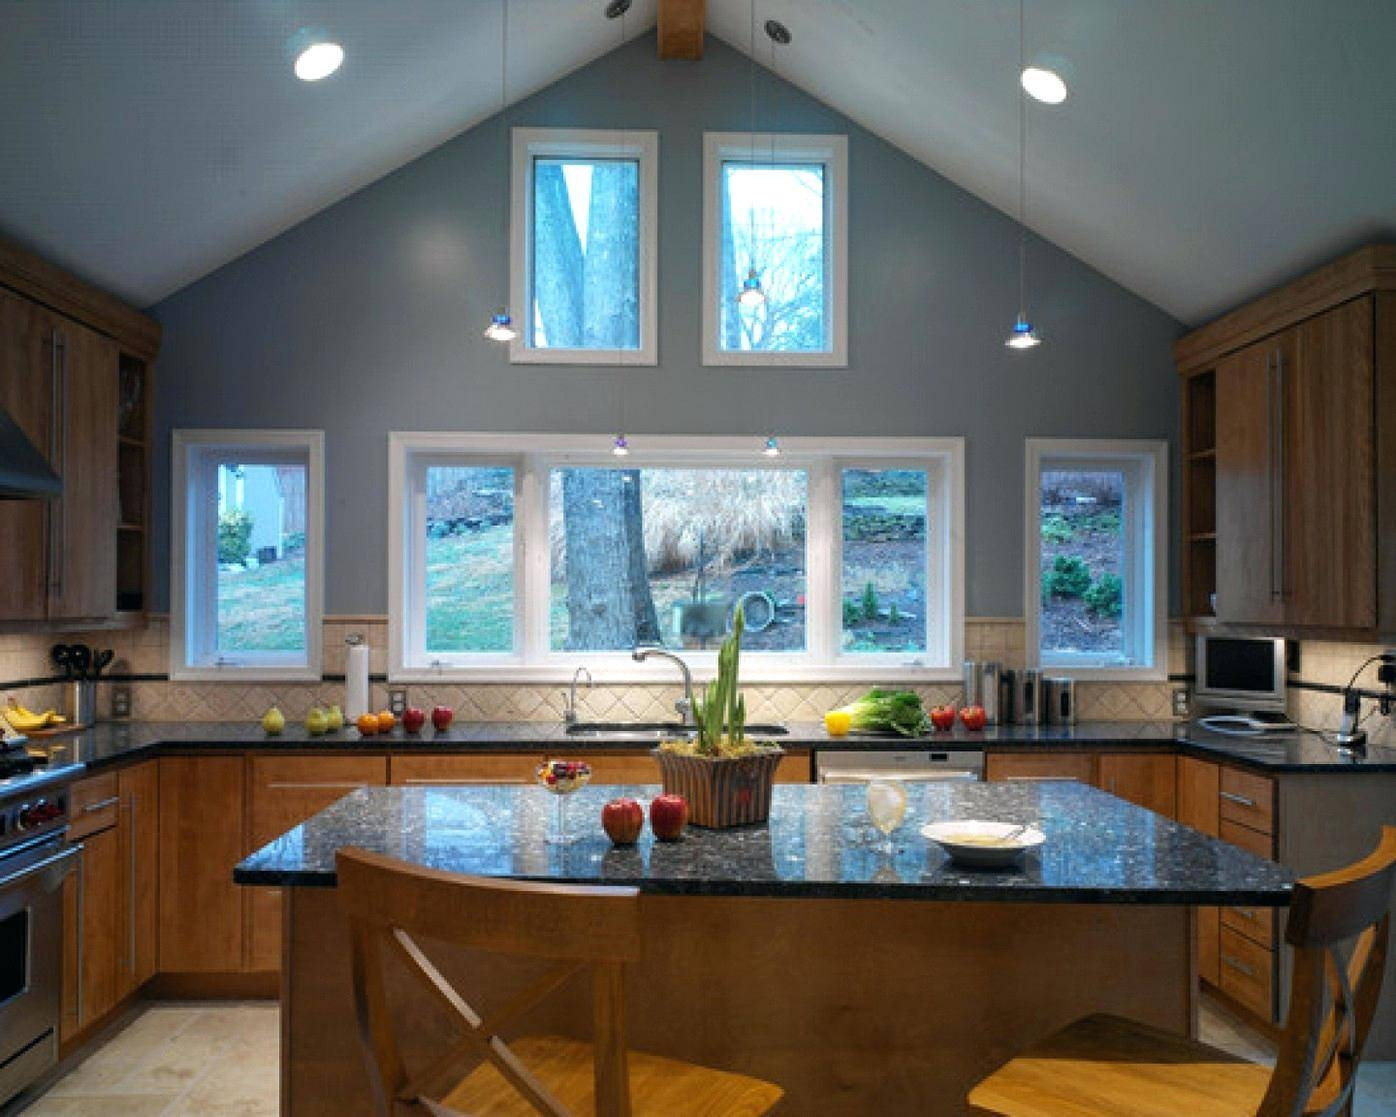 Pendant Light Sloped Ceiling – Doteco.co throughout Pendant Lights for Vaulted Ceilings (Image 12 of 15)